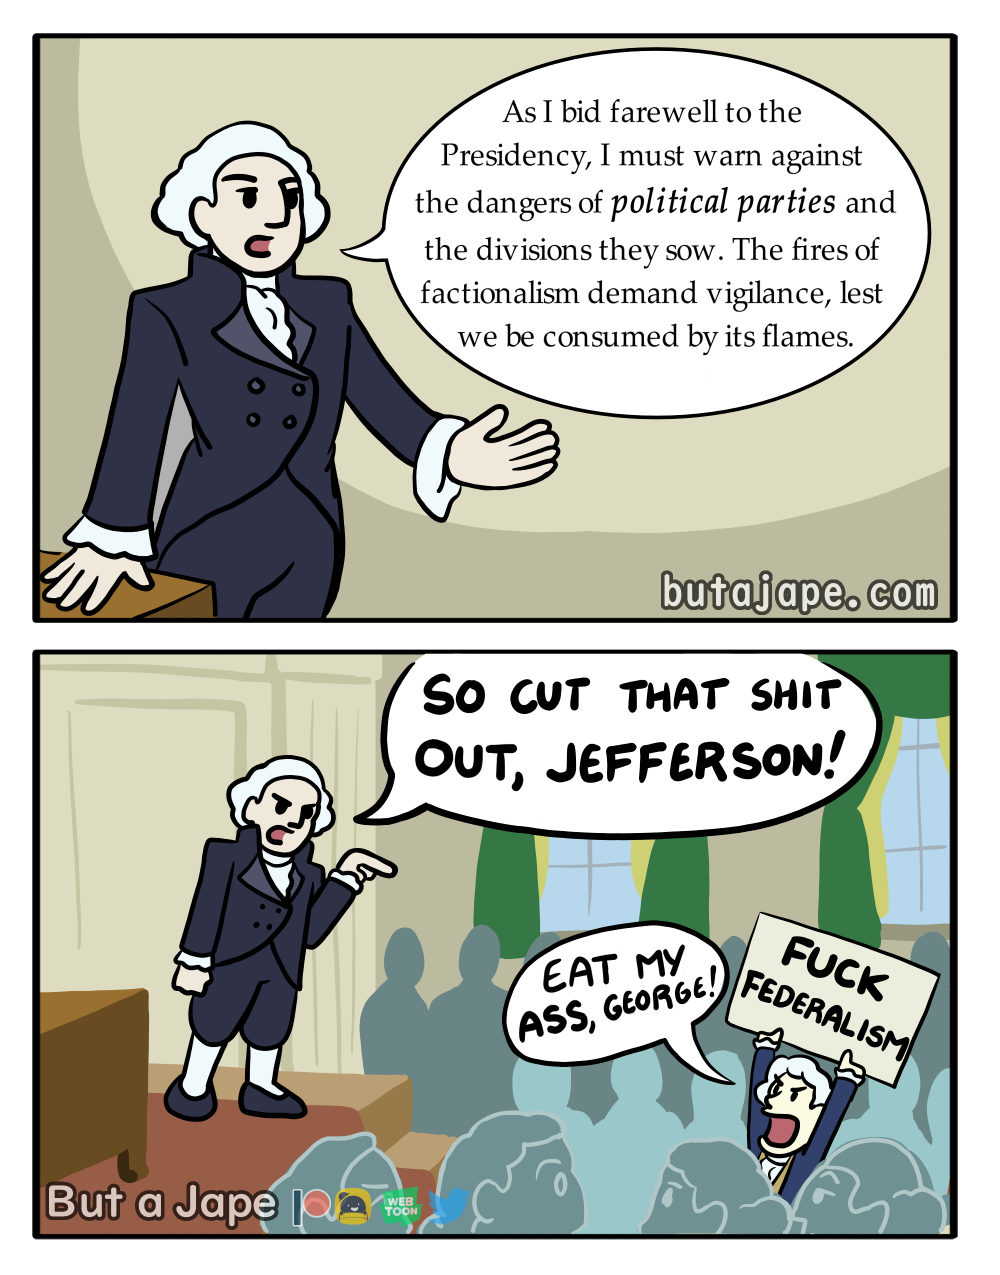 washington's warning comic